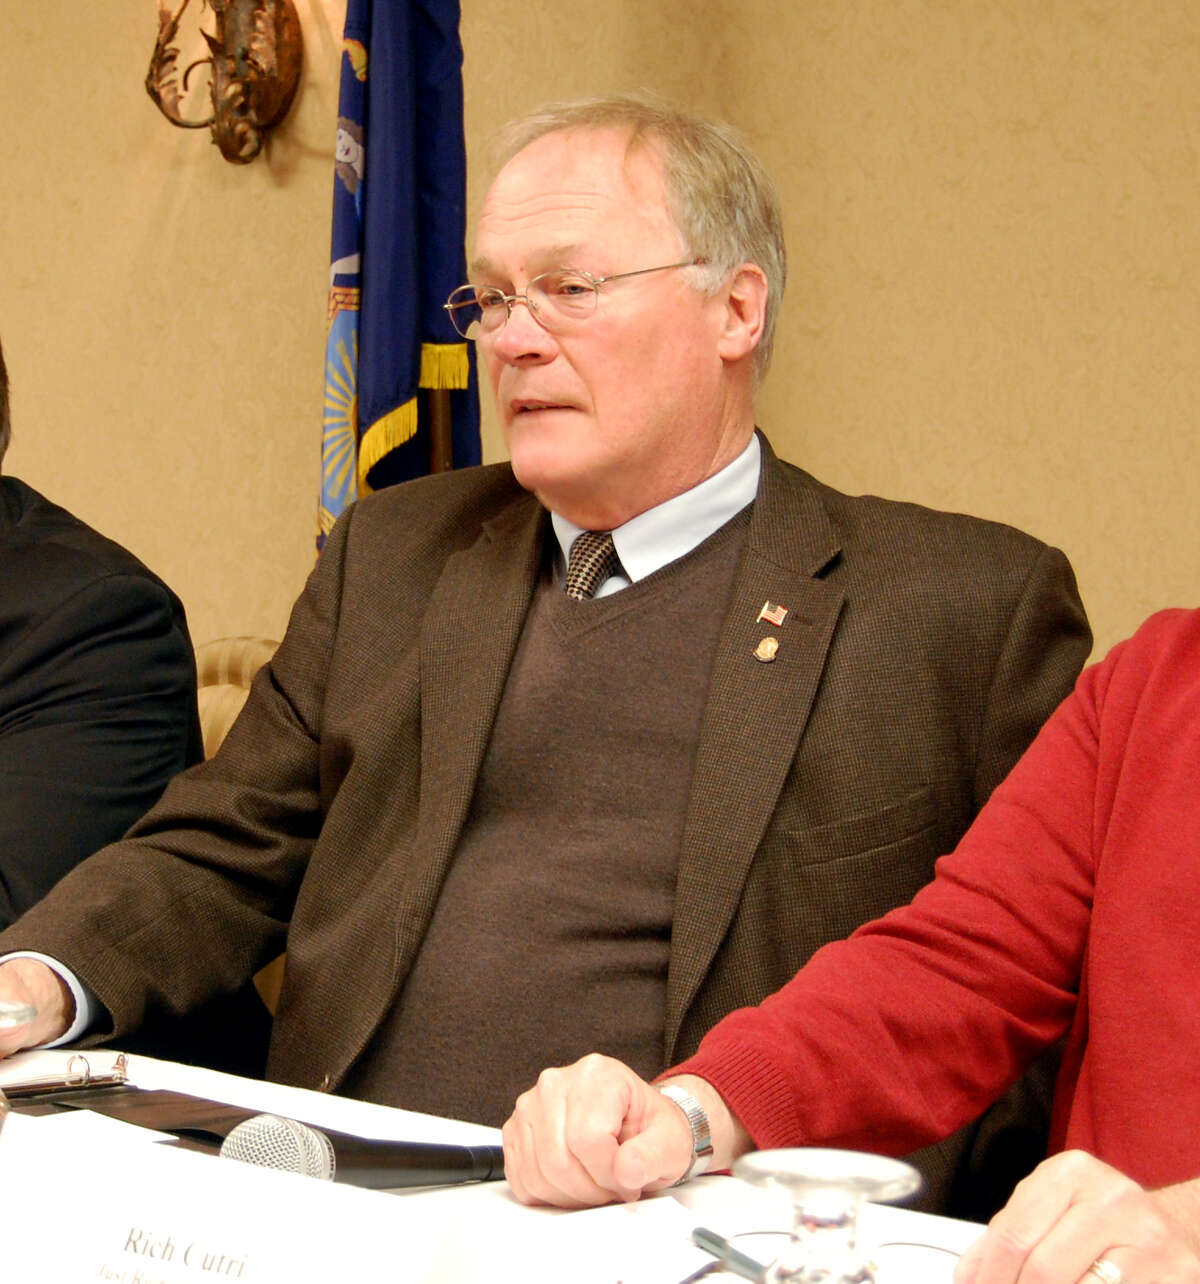 New York State Rifle and Pistol Association President Tom King, center, took questions Wednesday April 3, 2013, during a forum about the SAFE Act in Canandaigua, N.Y. (Jimmy Vielkind/Times Union)